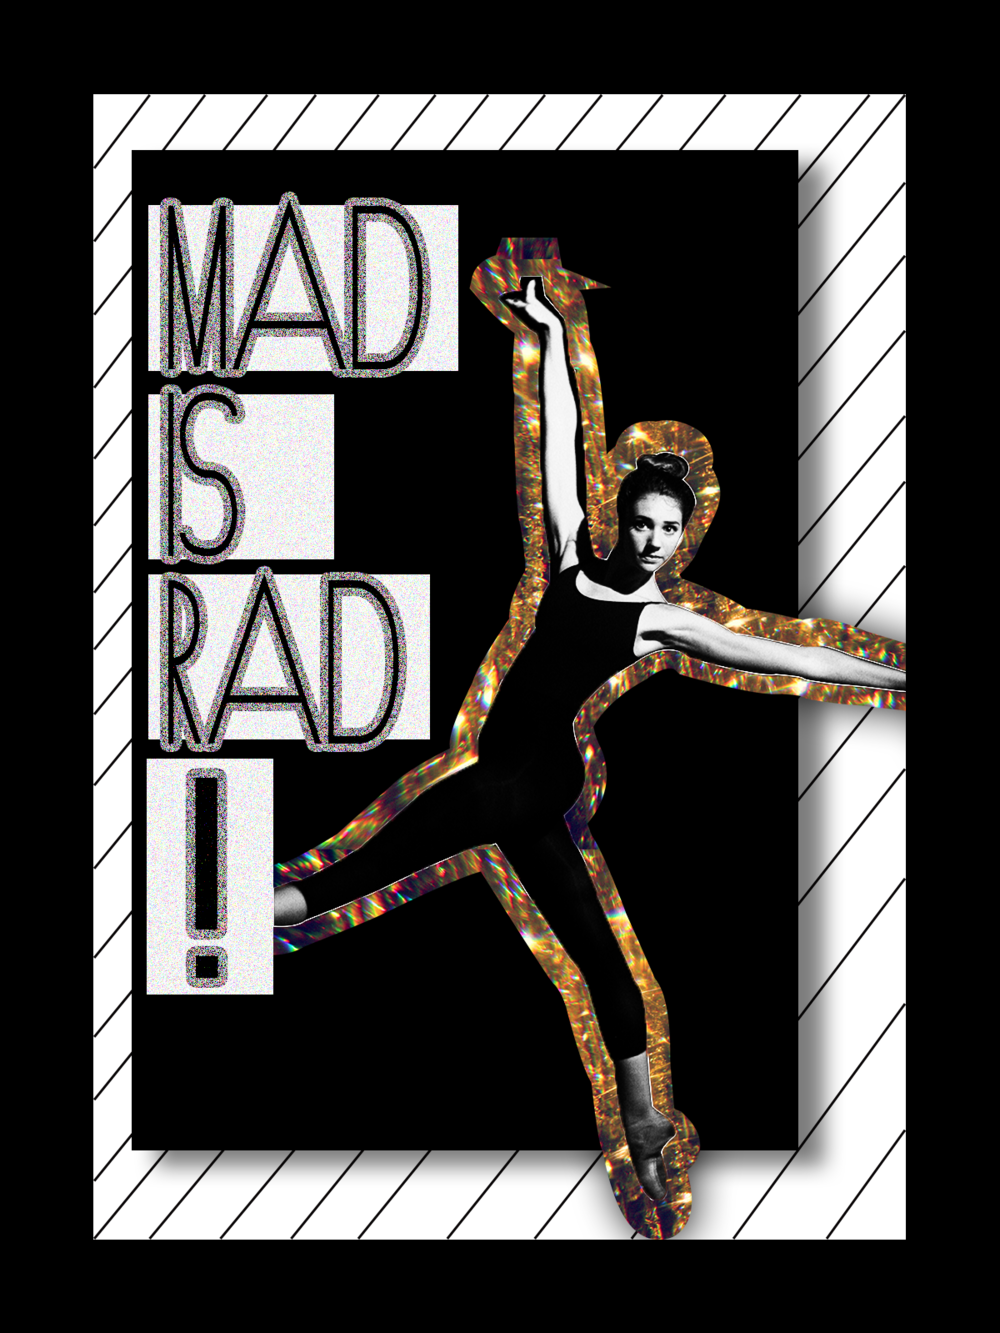 MAD.png